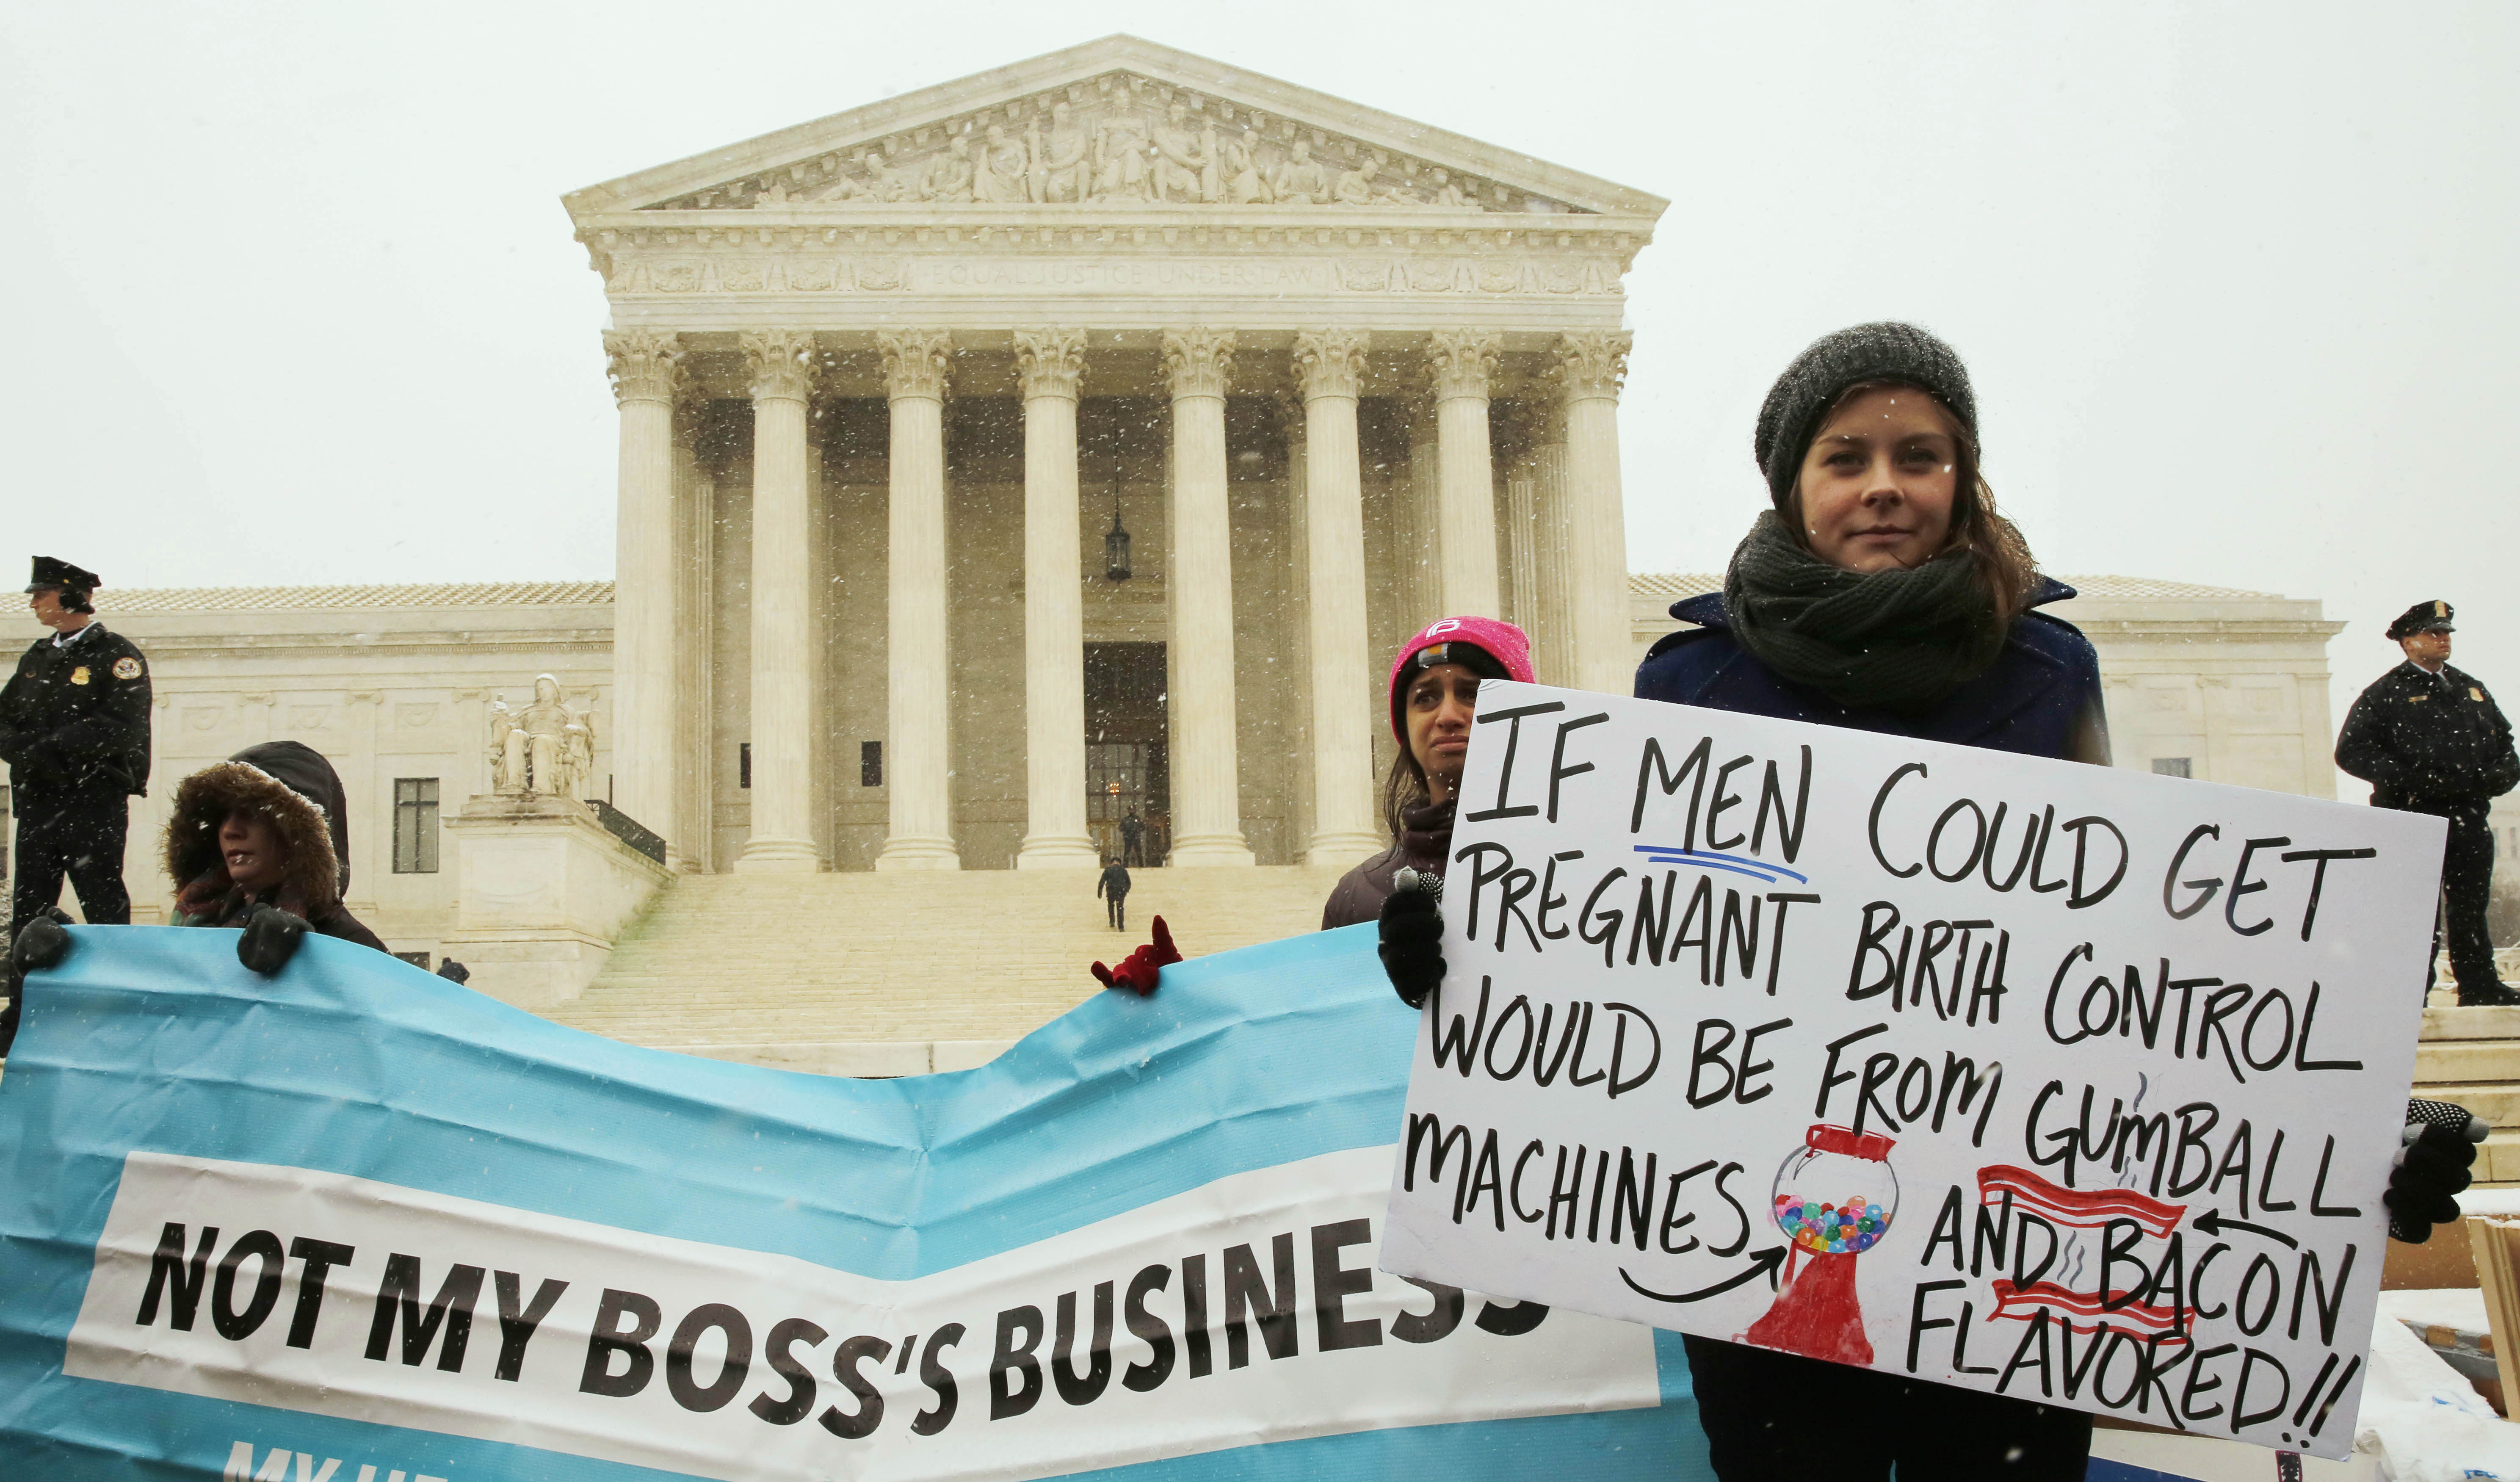 A protester holds a sign at the steps of the Supreme Court last year as arguments began to challenge the Affordable Care Act's requirement that employers provide coverage for contraception as part of an employee's health care. Abortion rates have dropped by more than a third since the 1970s, according to recent CDC report.  Photos by Larry Downing/Reuters